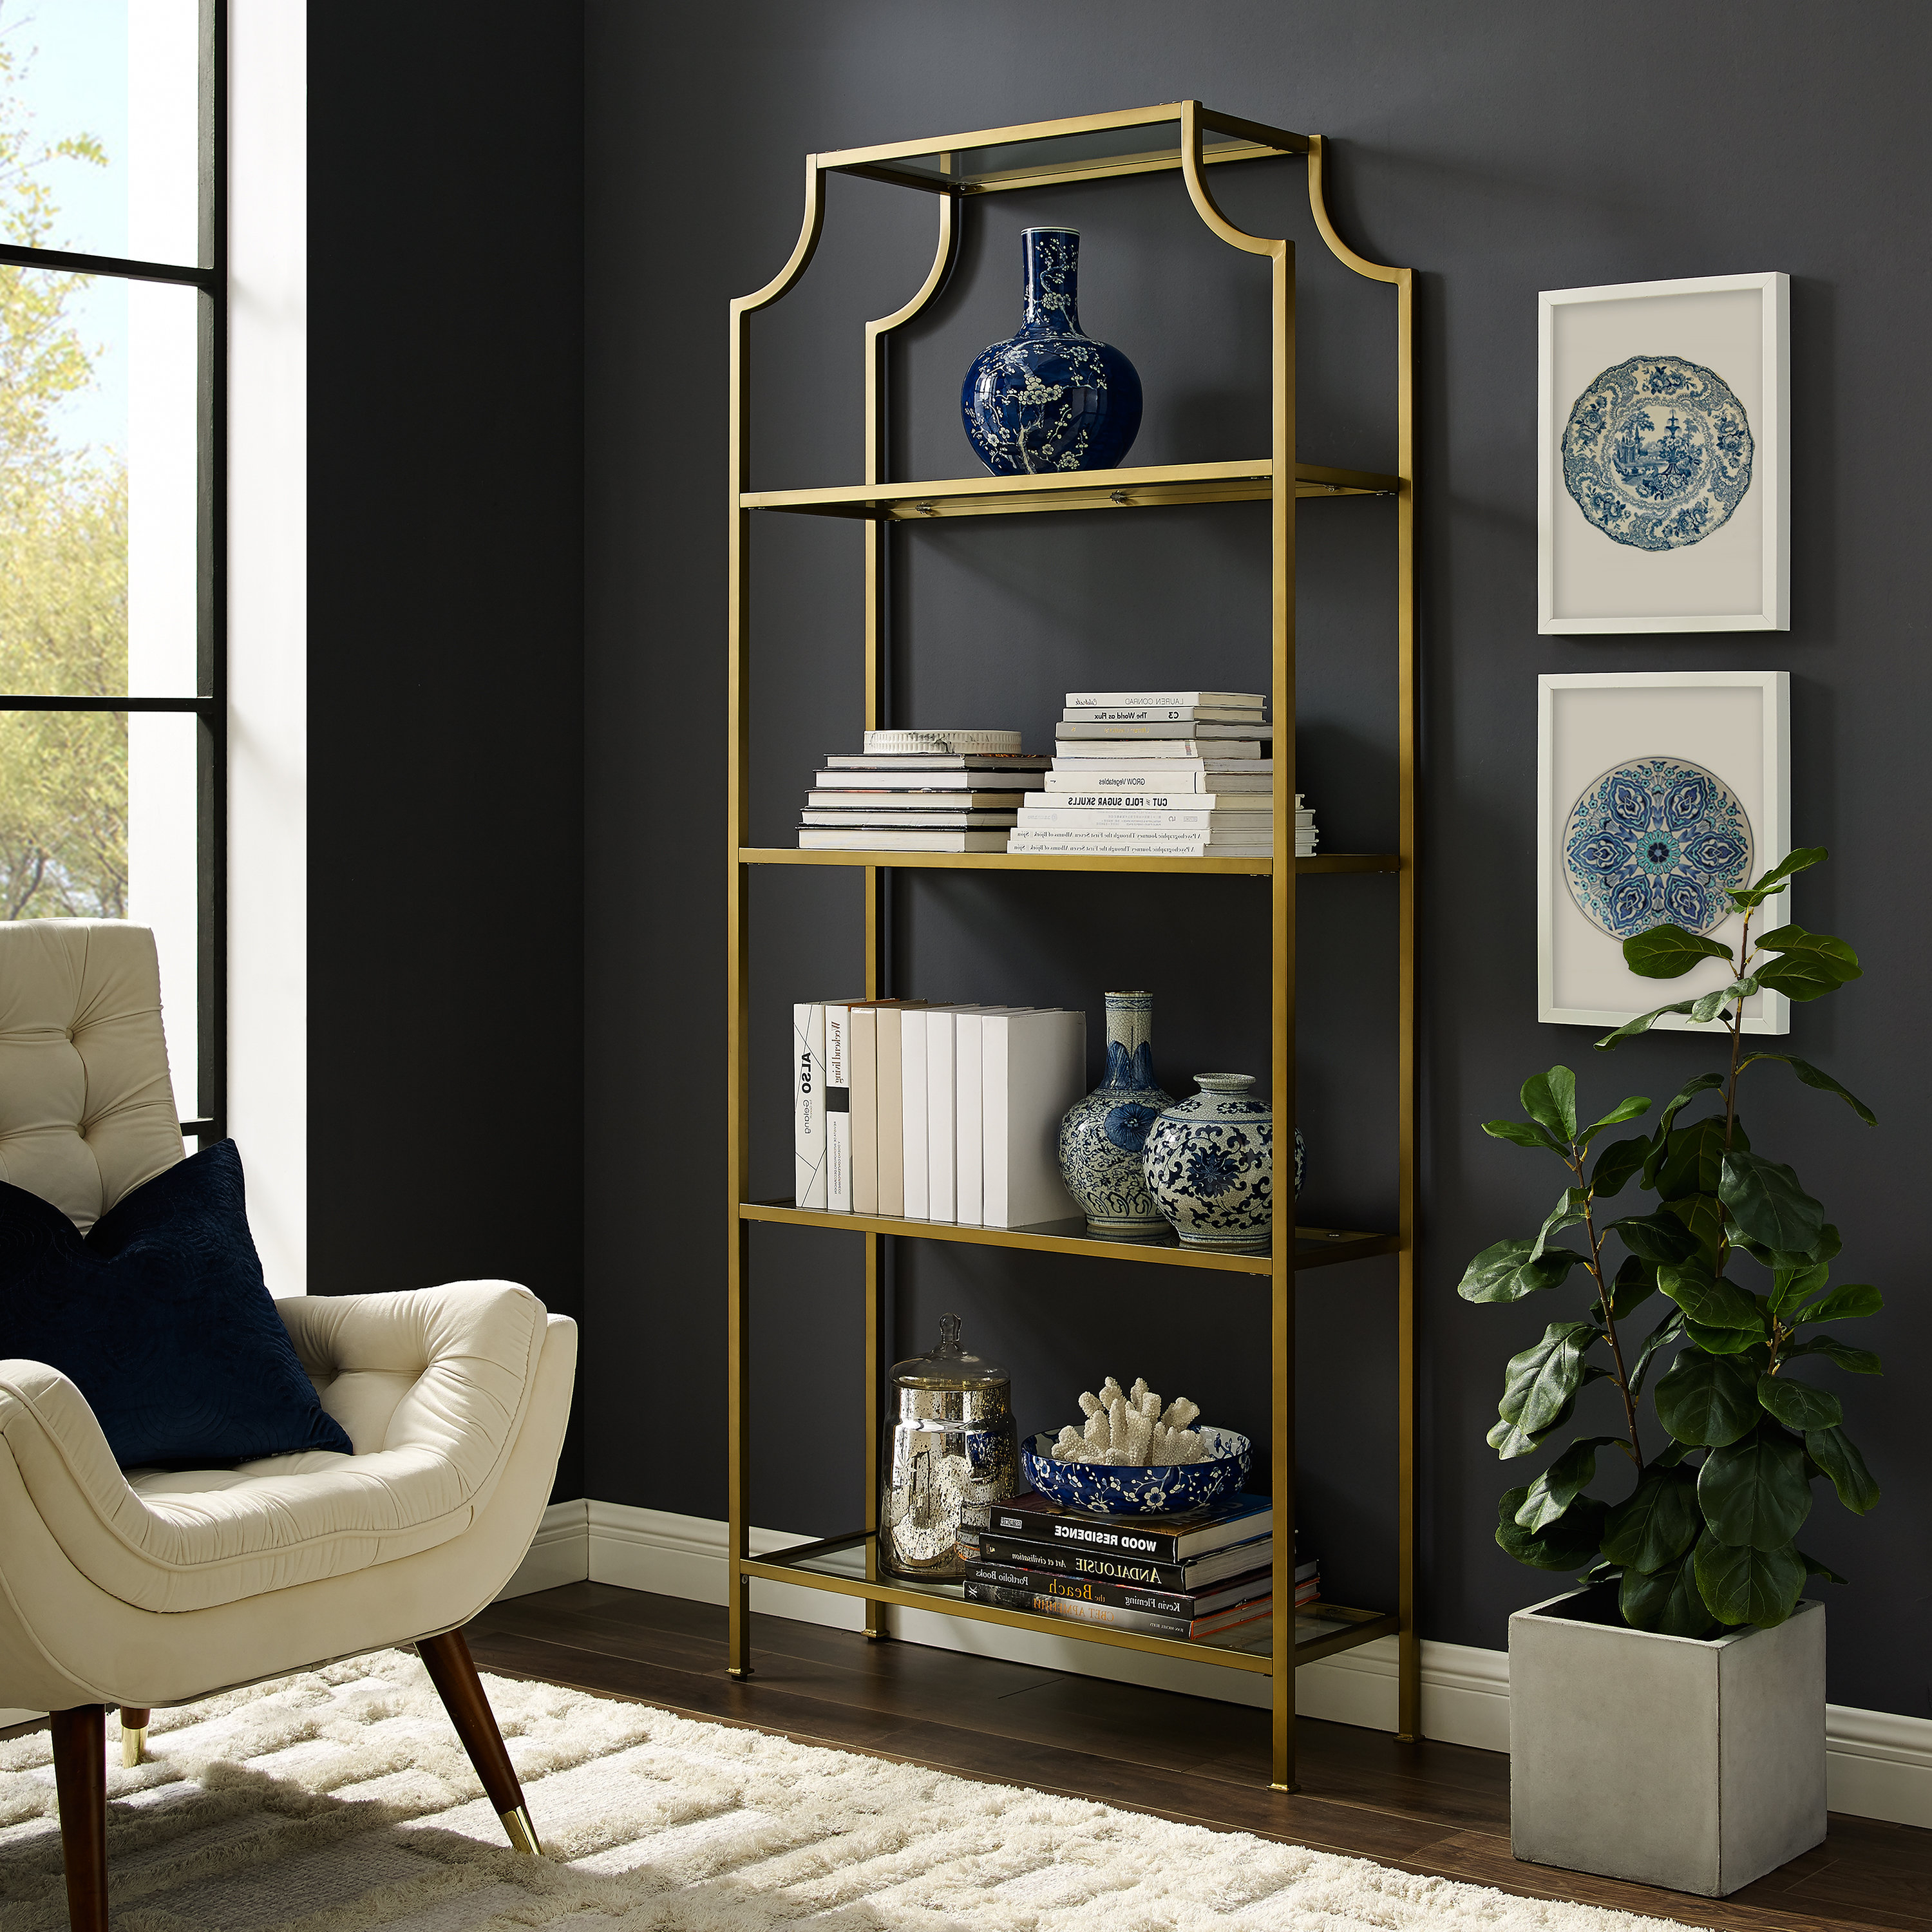 Buchanan Etagere Bookcases Regarding Popular Buchanan Etagere Bookcase (Gallery 15 of 20)